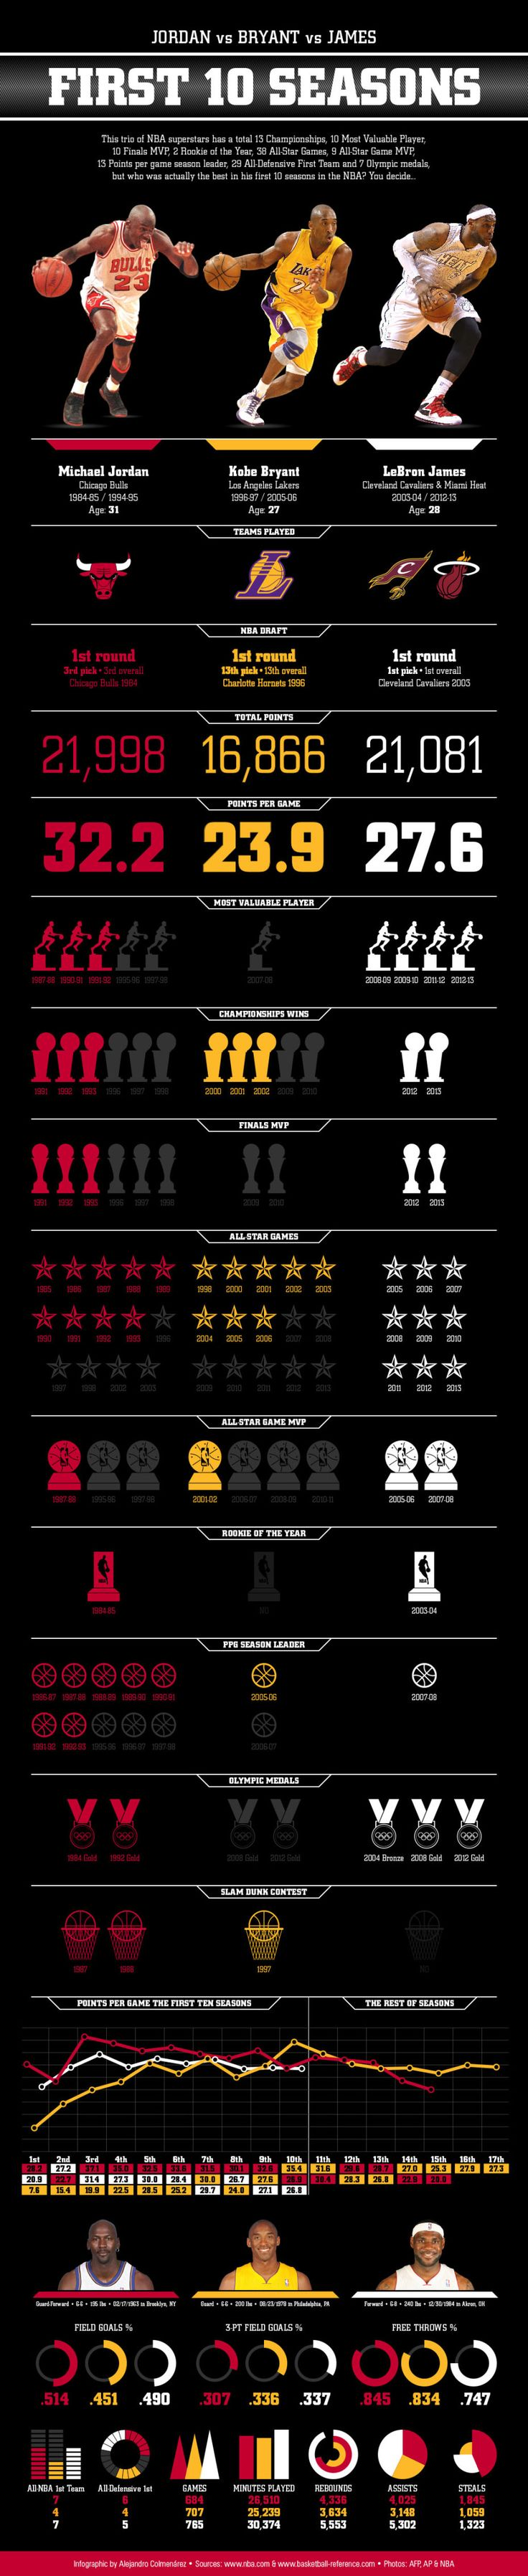 Jordan, Kobe & LeBron's First Ten Years by the Stats (Infographic) | The Roosevelts